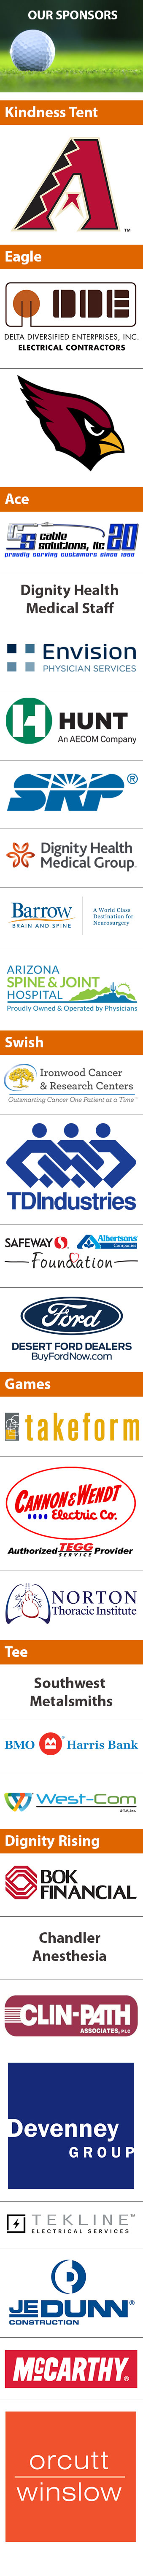 Sponsors for 2020 Golf Classic